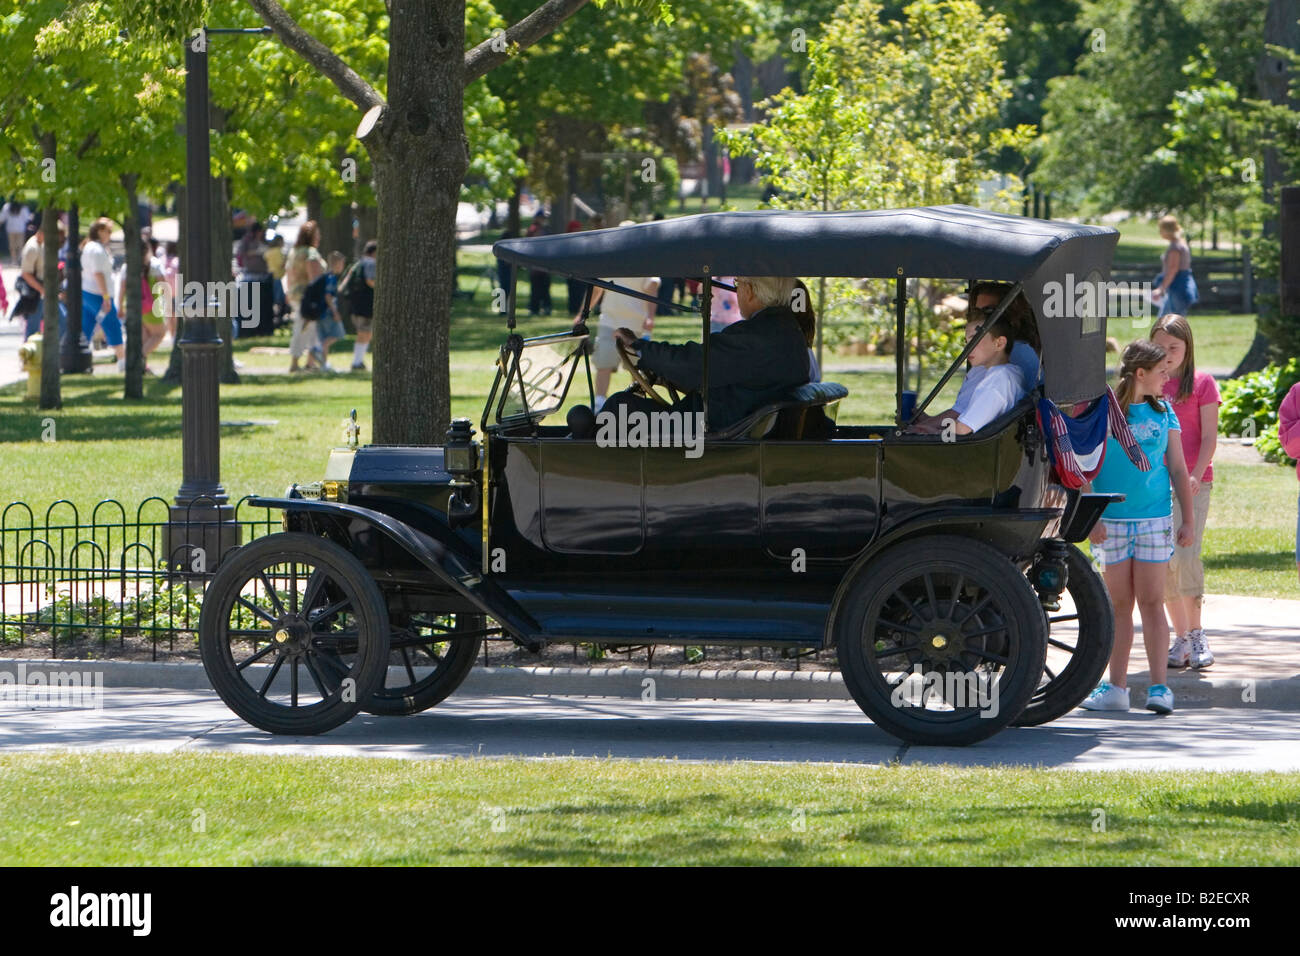 Visitors ride in a ford model t in greenfield village at the henry ford in dearborn michigan